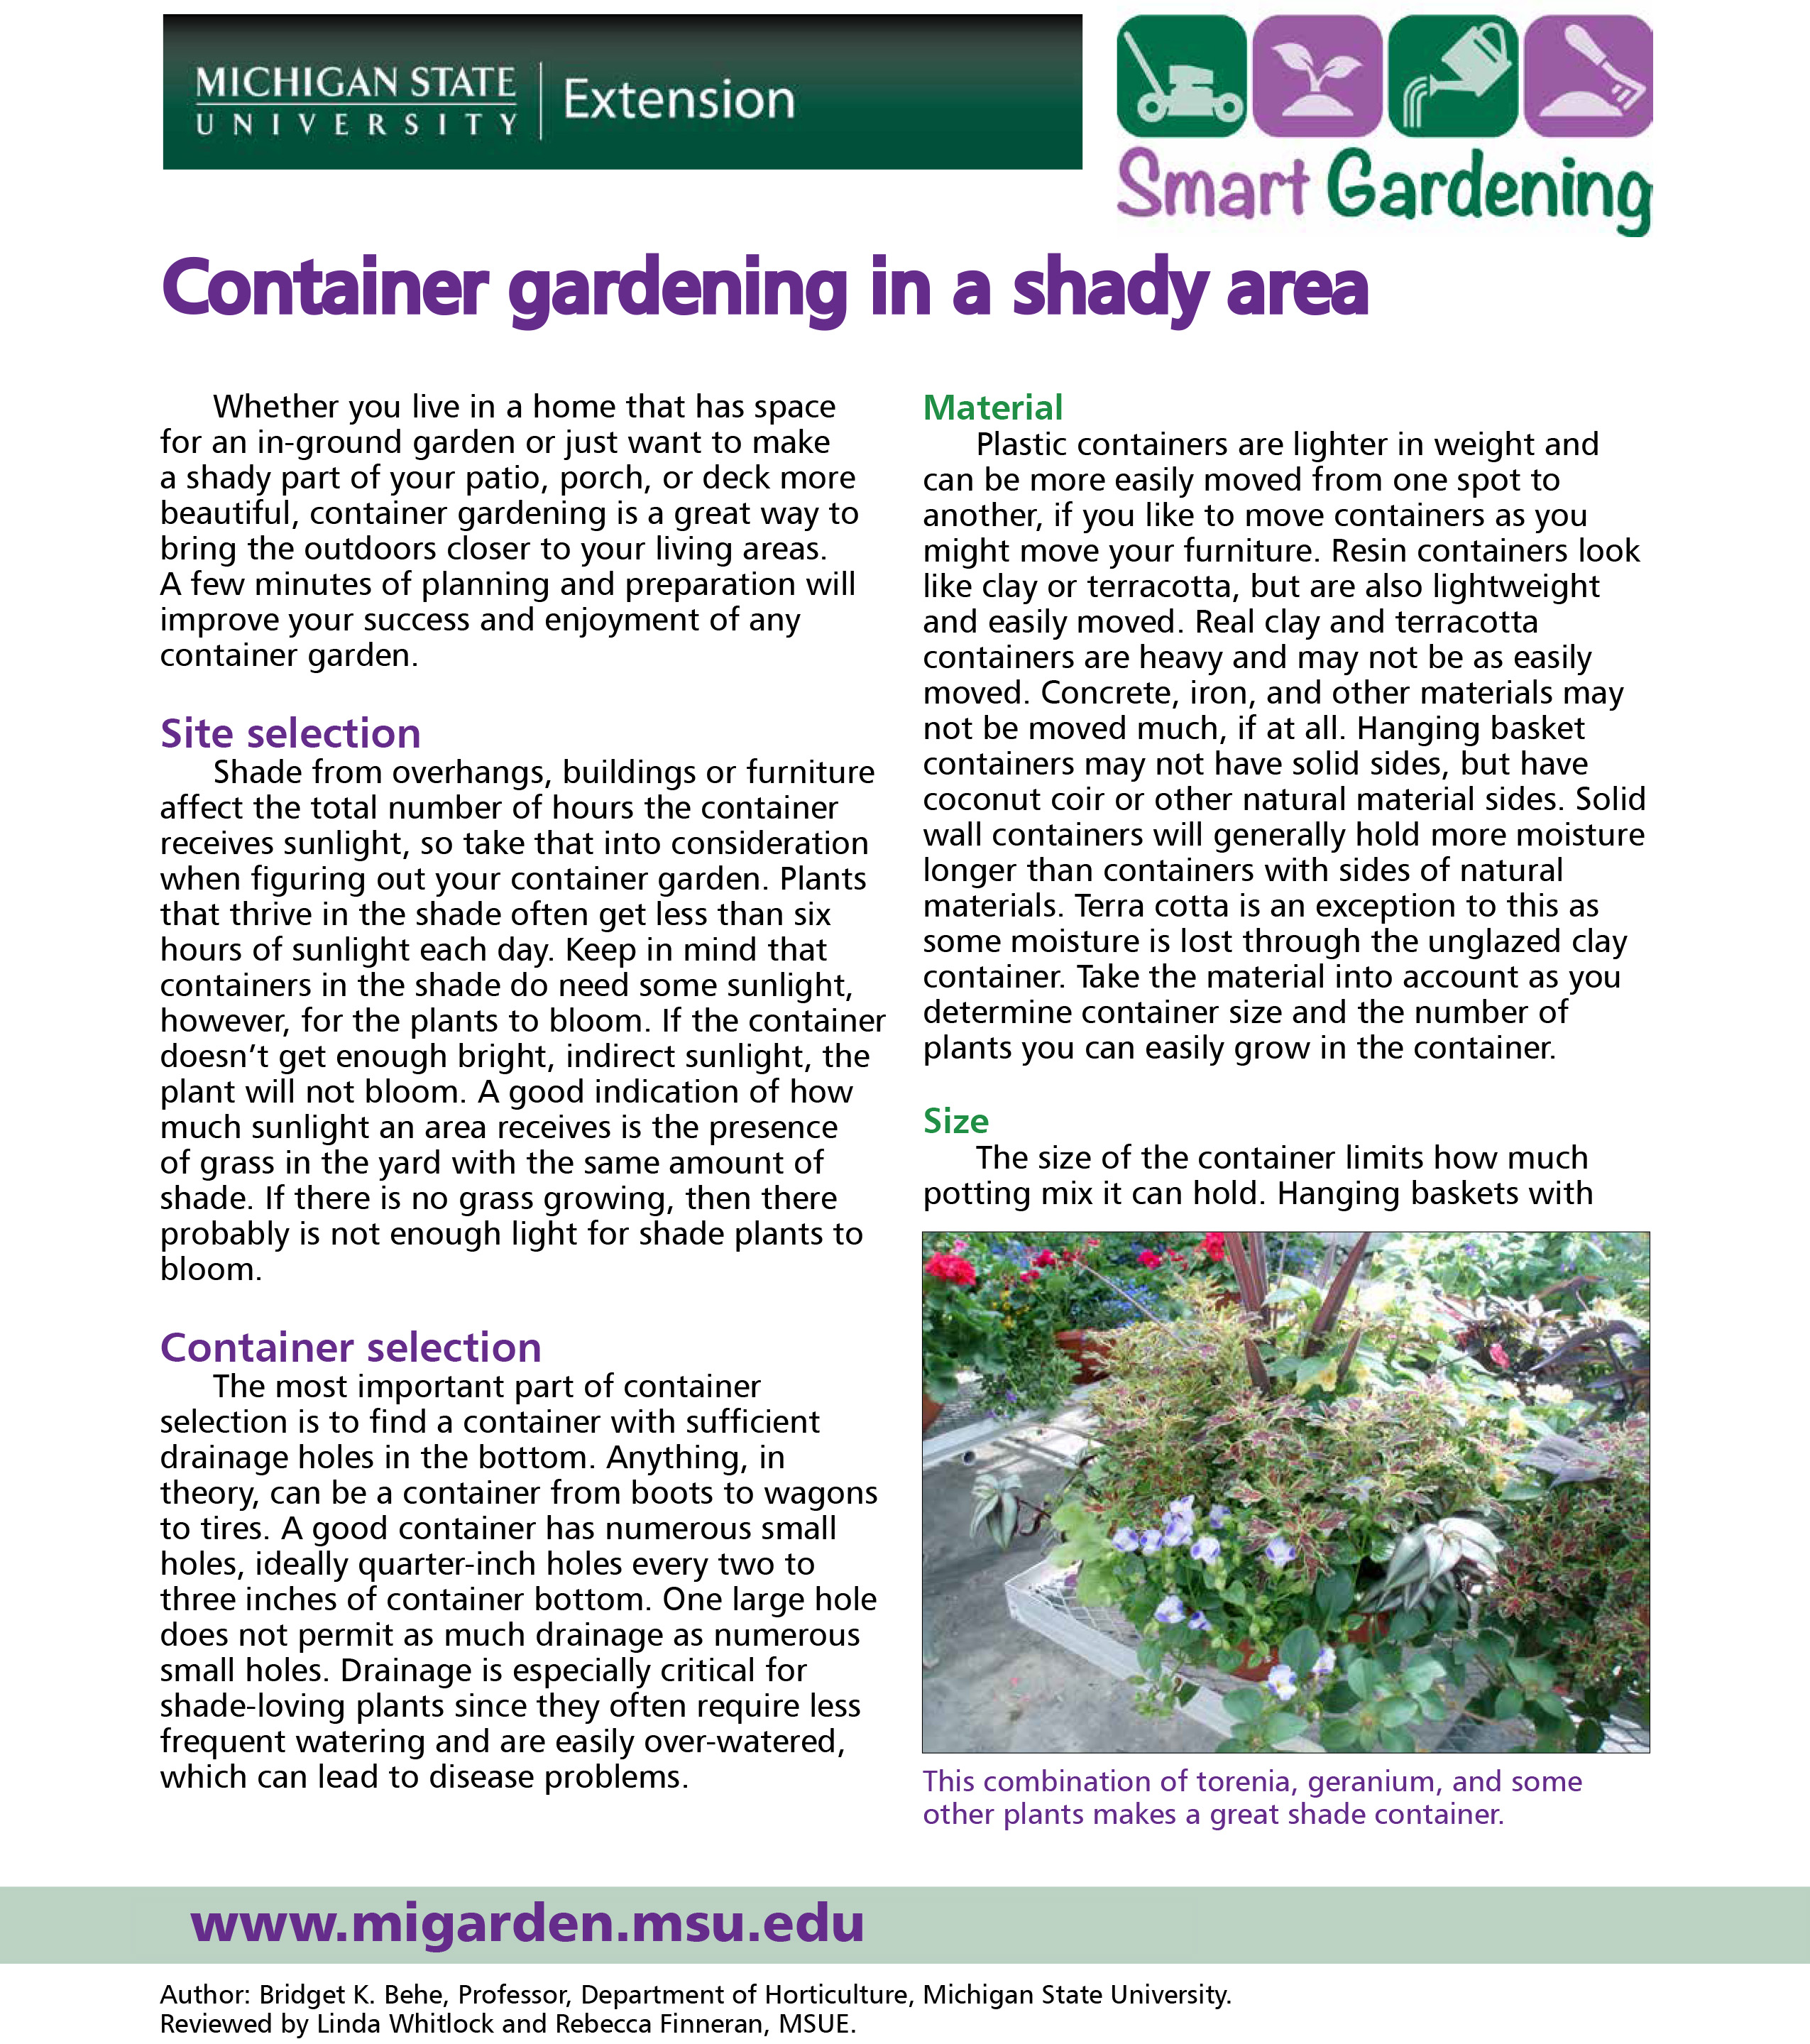 Container gardening in a shaded area tip sheet